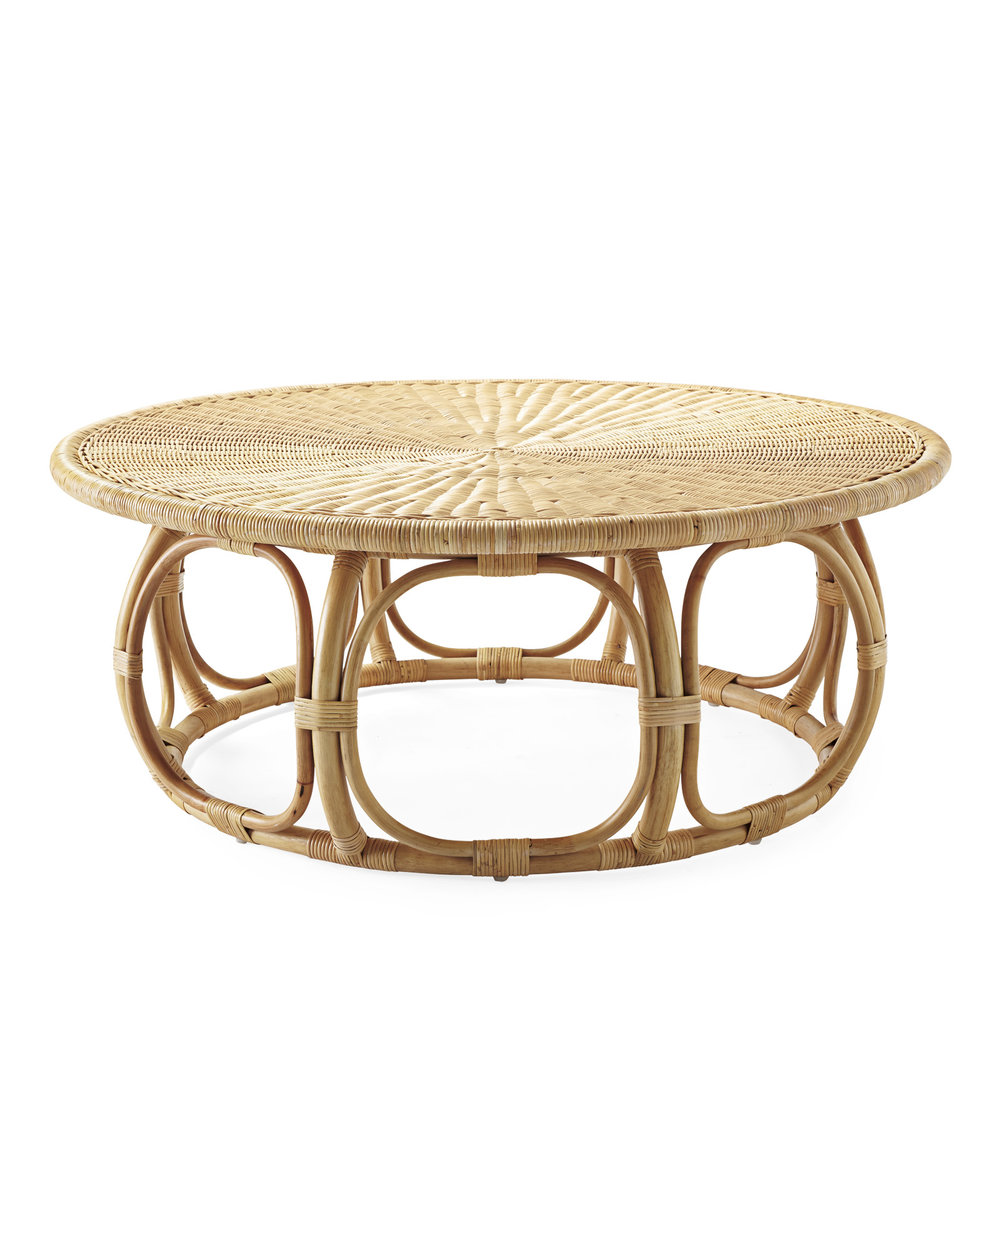 Anguilla rattan coffee table - Serena & Lily